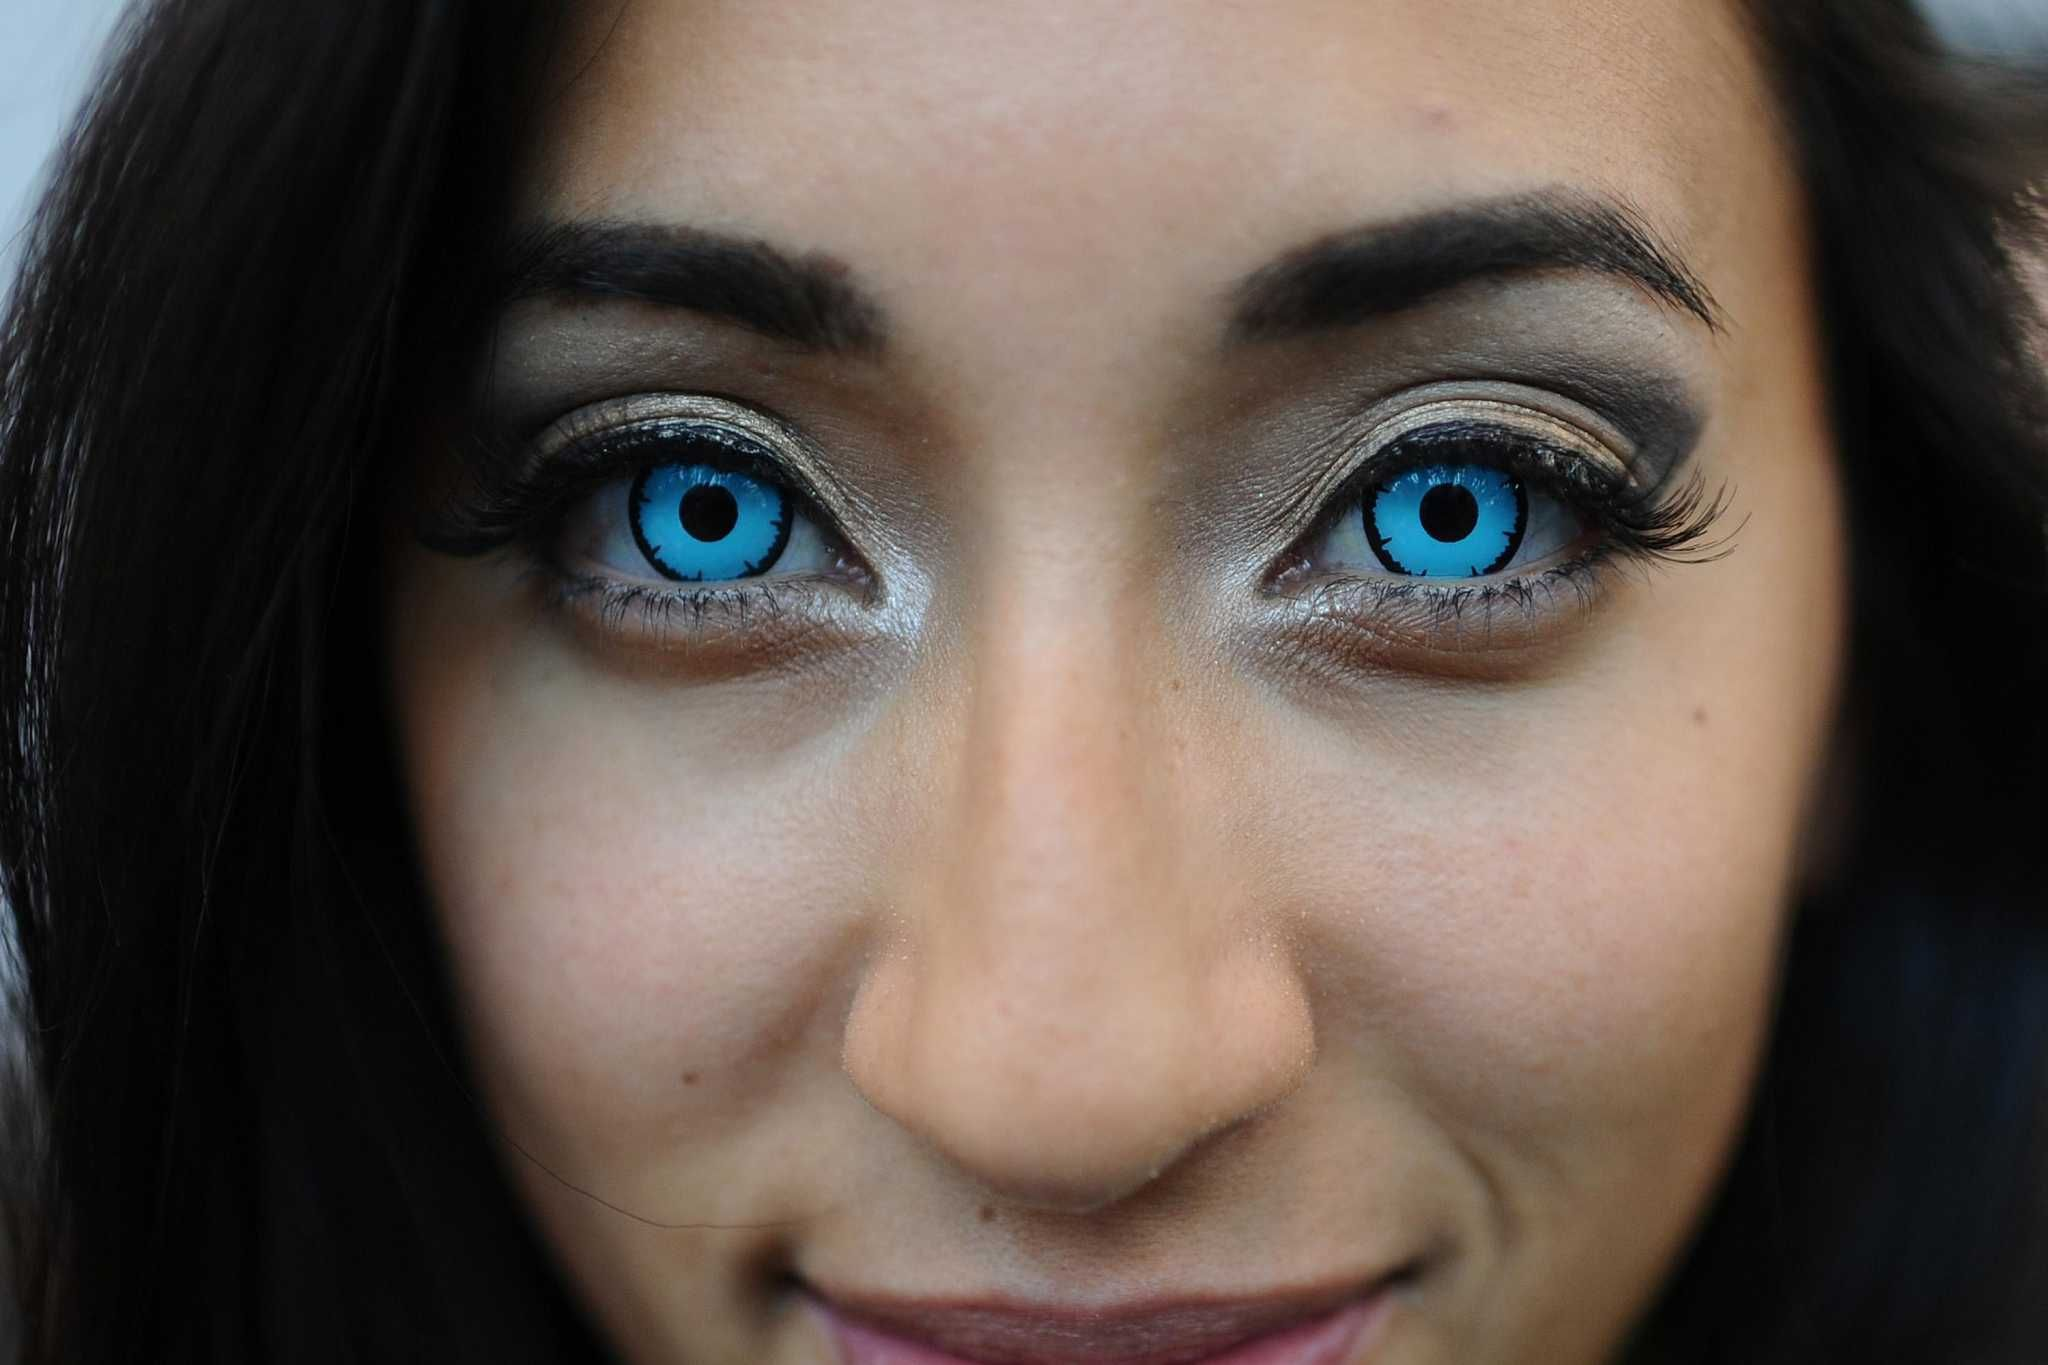 Halloween contact lenses can up your costume but damage